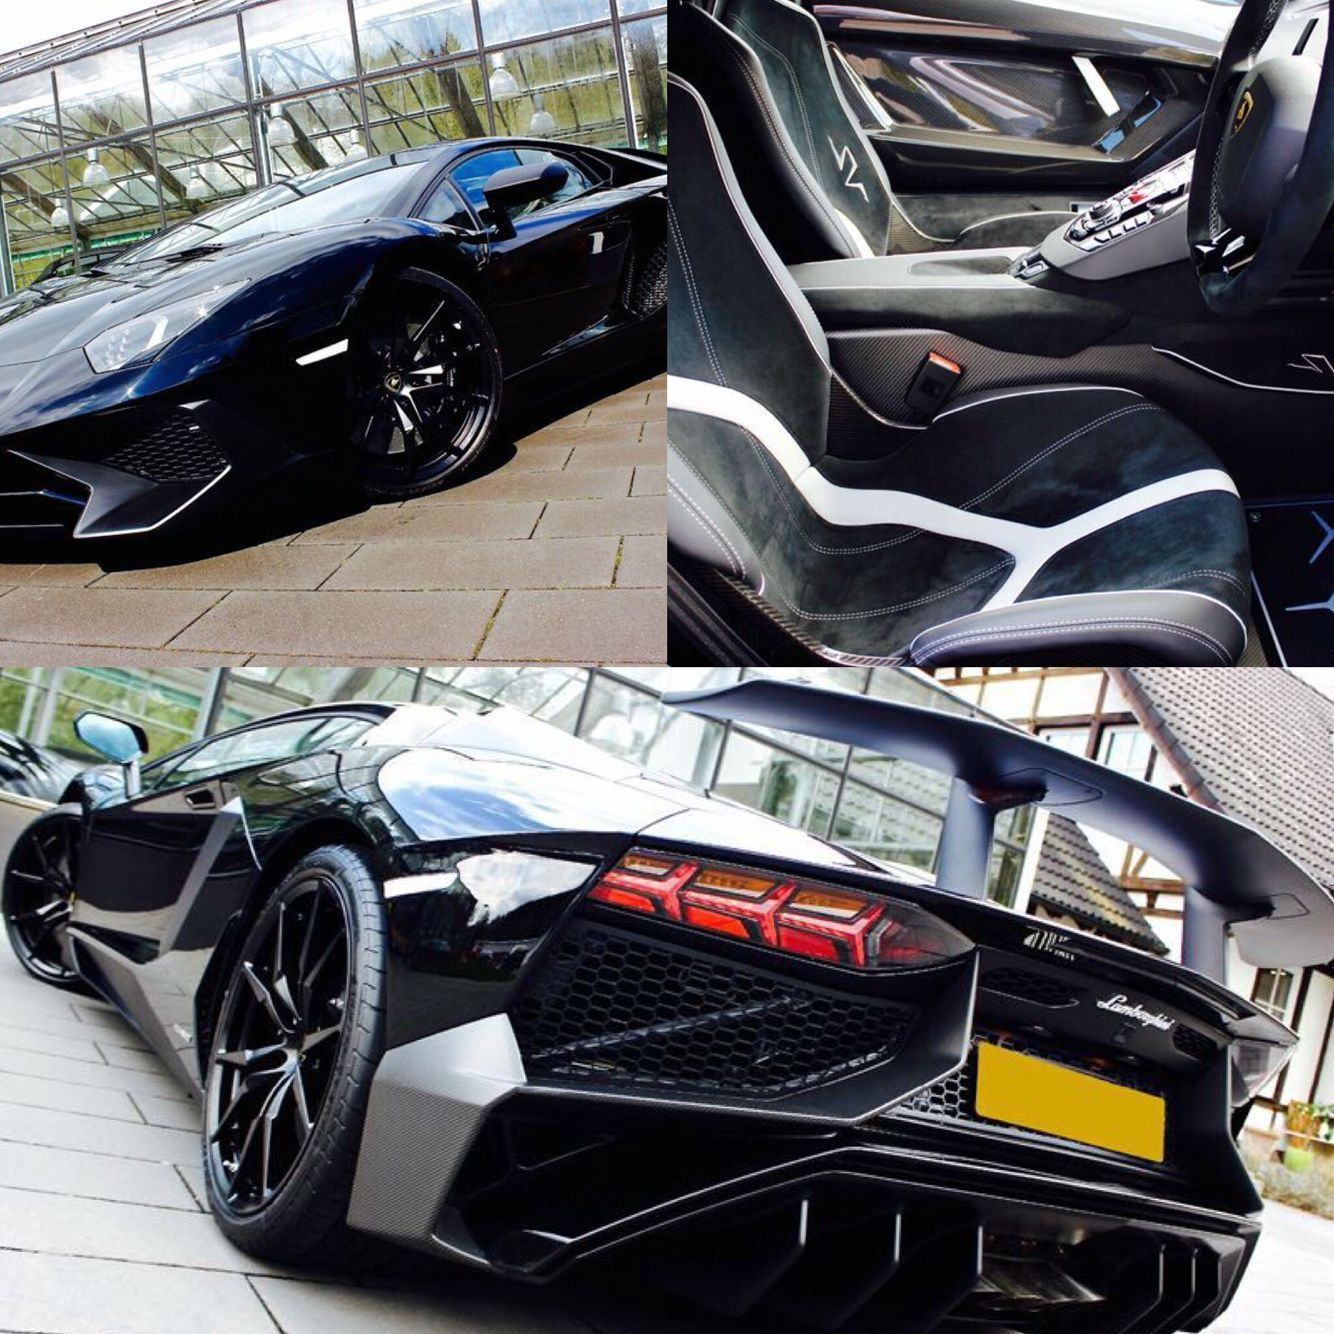 Lamborghini SV Coupe for Sale #lamborghinisv Lamborghini SV Coupe for Sale #lamborghinisv